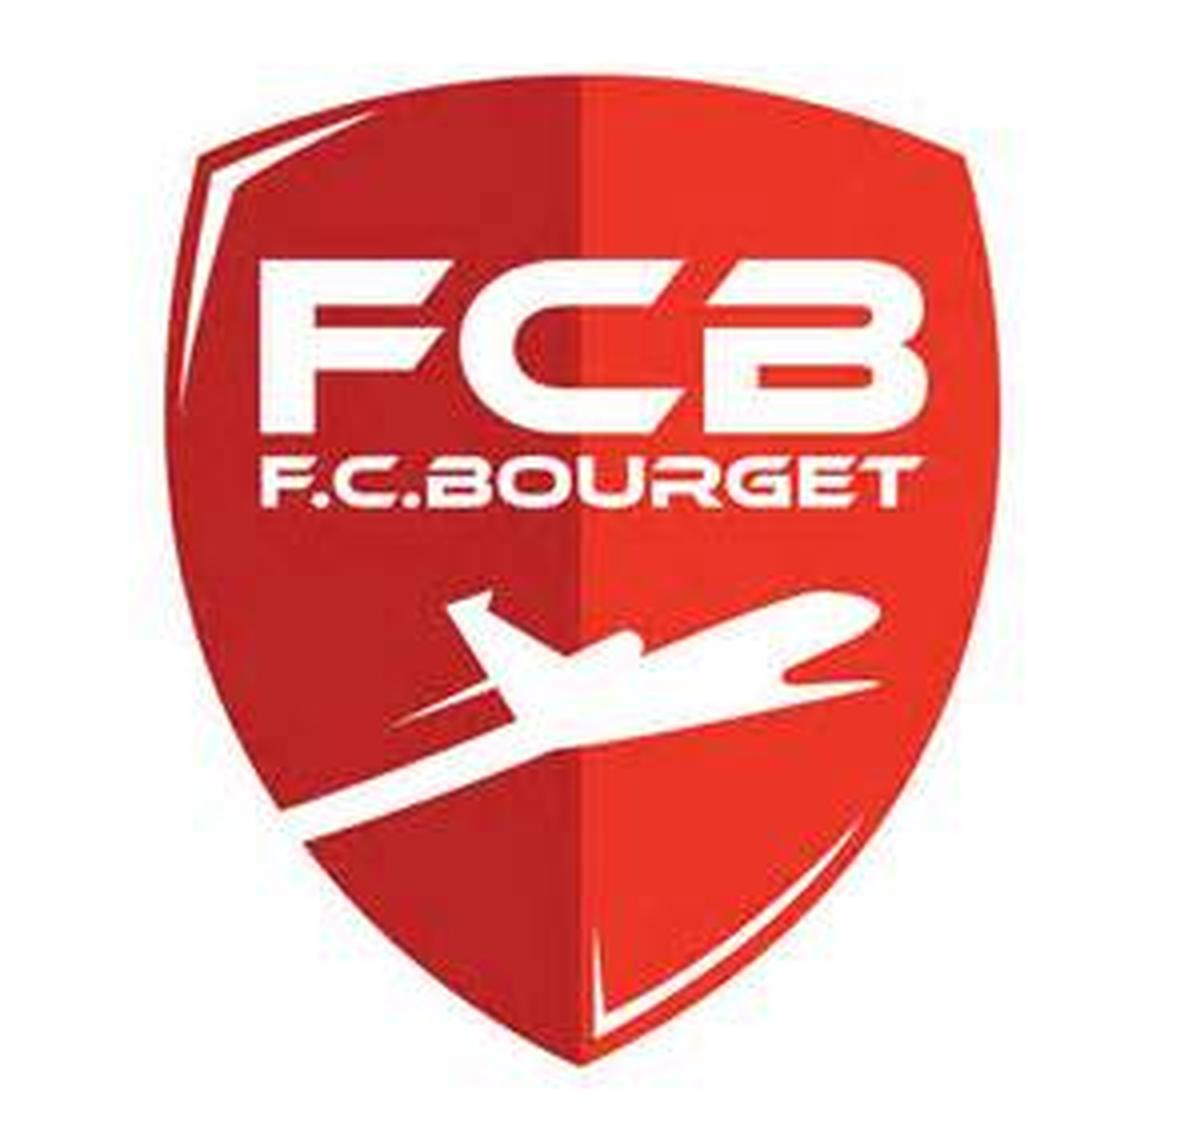 FC BOURGET 1